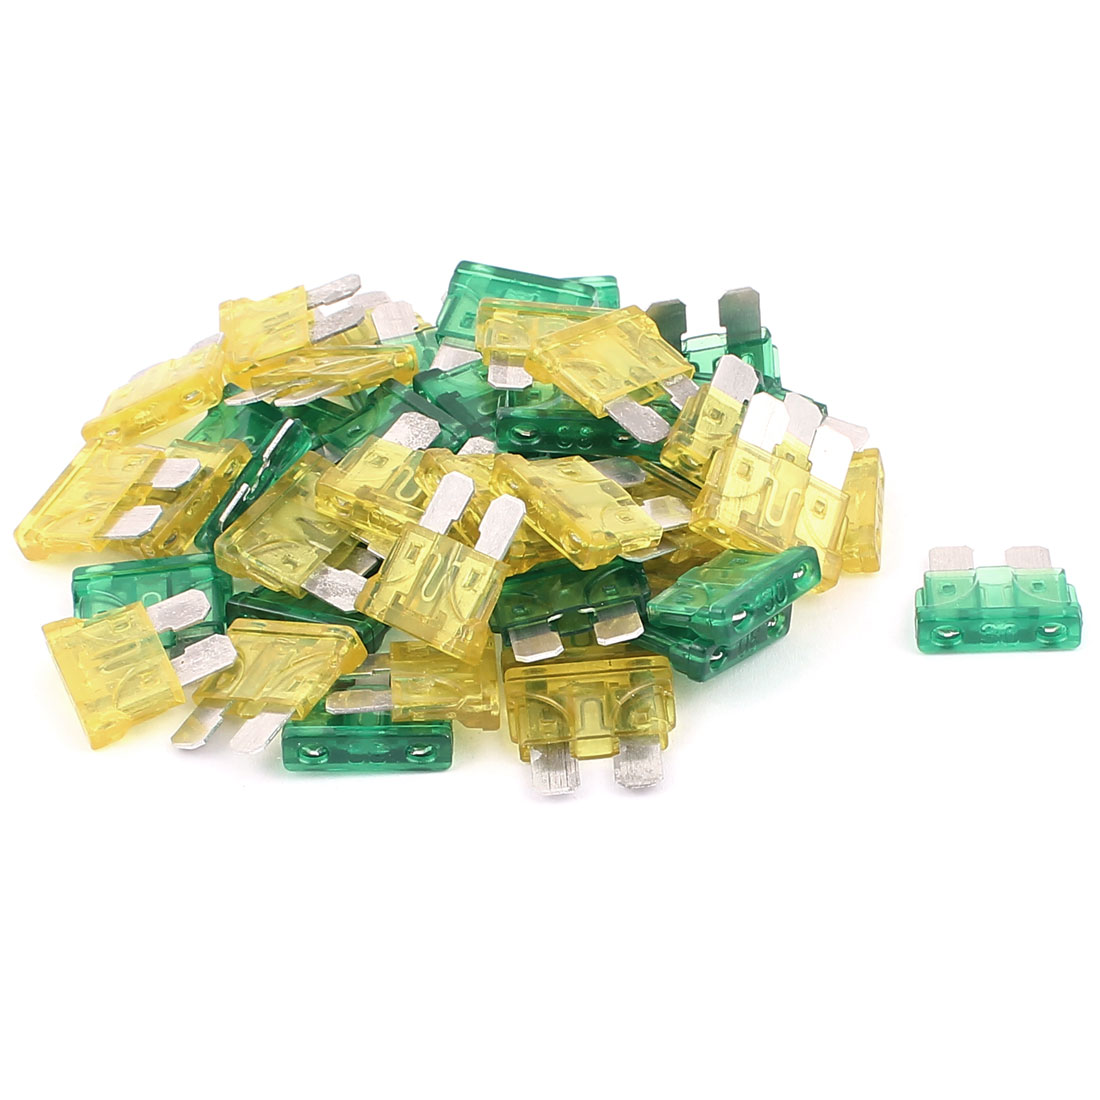 50pcs Motorcycle Car Vehicle Caravan SUV Boat ATC ATO Mini Blade Fuses 30A 20A Yellow Green